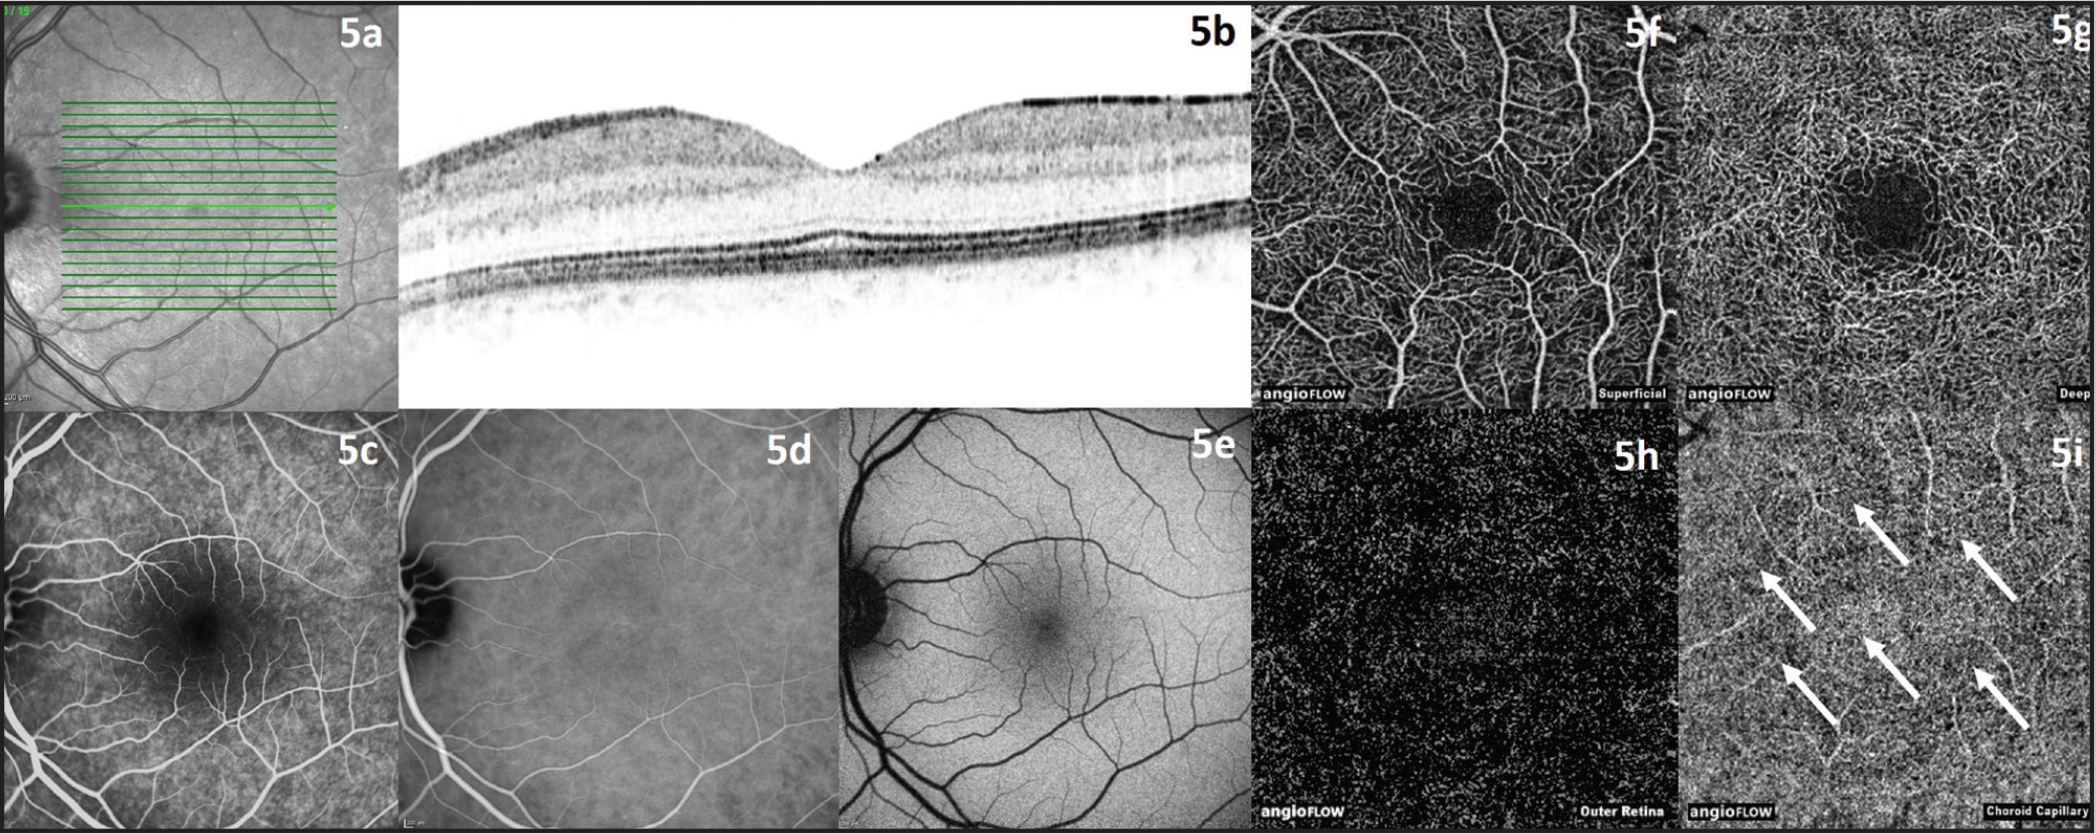 Left healthy eye of the same 29-year-old male patient as in Figure 4. (A, B) Infrared and optical coherence tomography (OCT) image. (C) Fluorescein angiography image. (D) Indocyanine green angiography image. (E) Fundus autofluorescence image. (F) OCT angiography (OCTA) image of superficial retinal vessels. (G) OCTA image of deep retinal vessels. (H) OCTA image of outer retina. (I) OCTA image of choroid capillaries with regular flow pattern (white arrows).